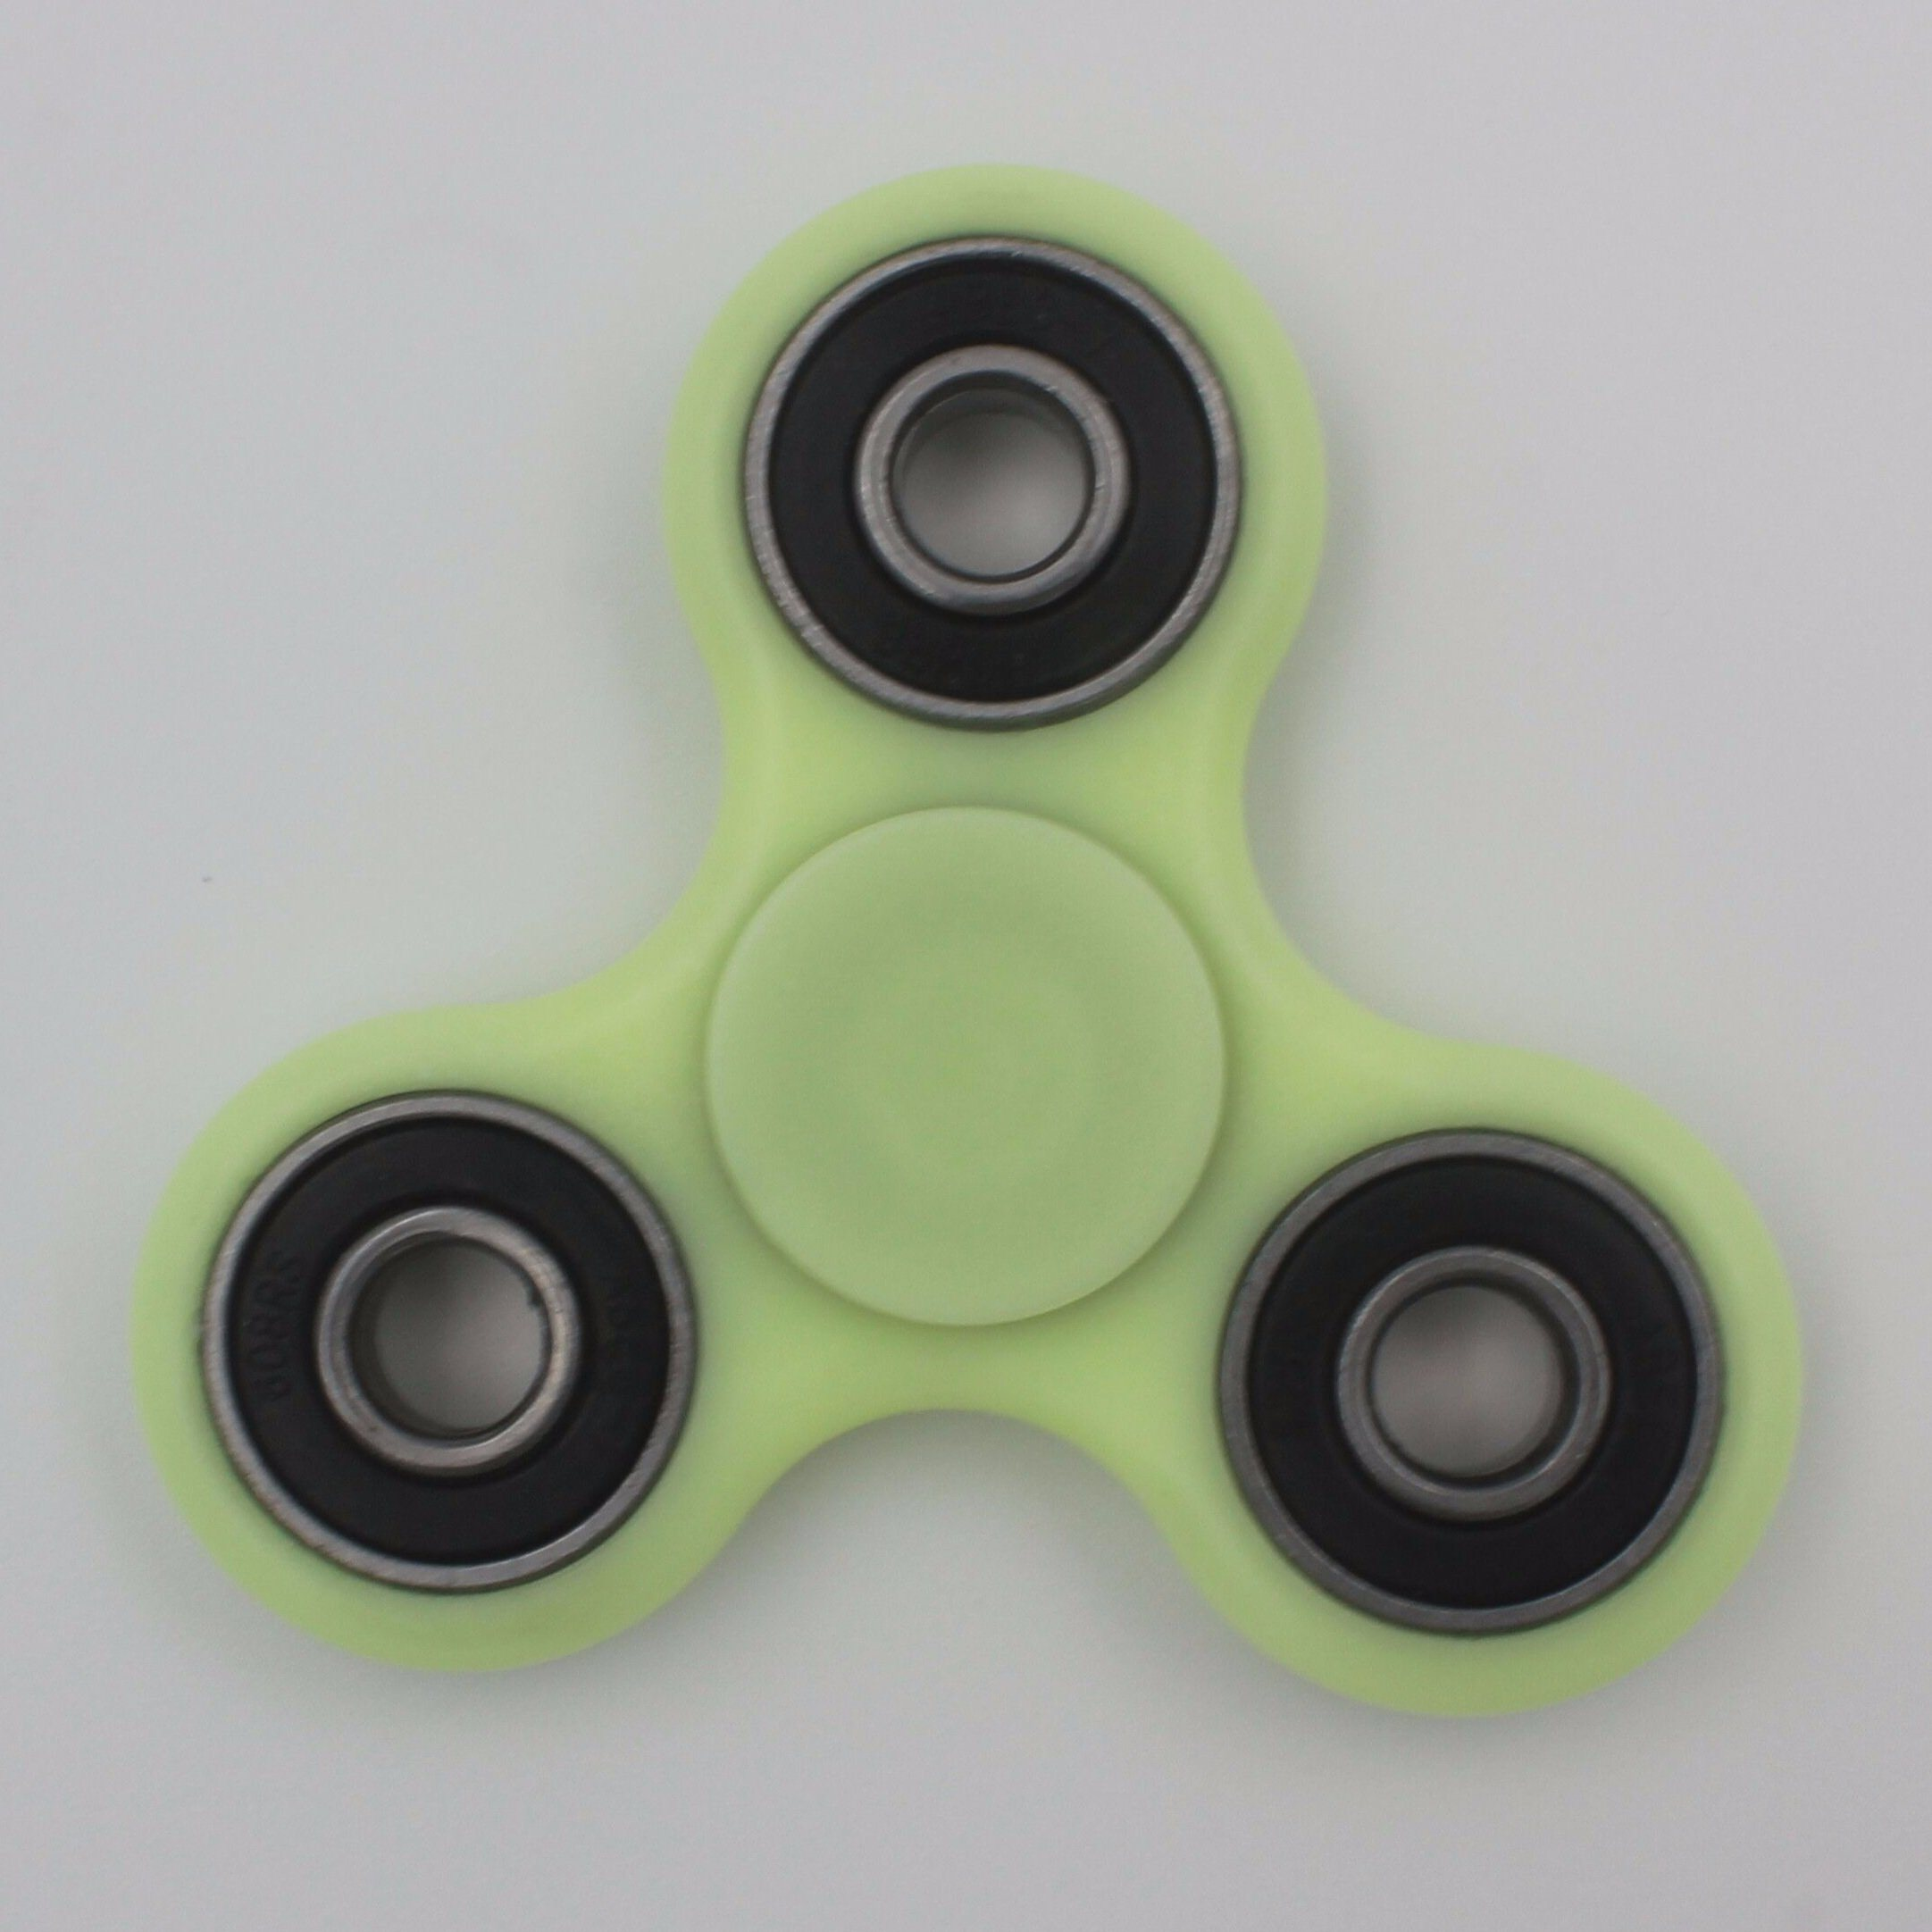 Fidget Spinner, Hand Spinner Bearing with Luminous Fluorescent Light Glow in The Dark, Ultra Durable High Speed for Add, Adhd Anxiety Autism Boredom Stress